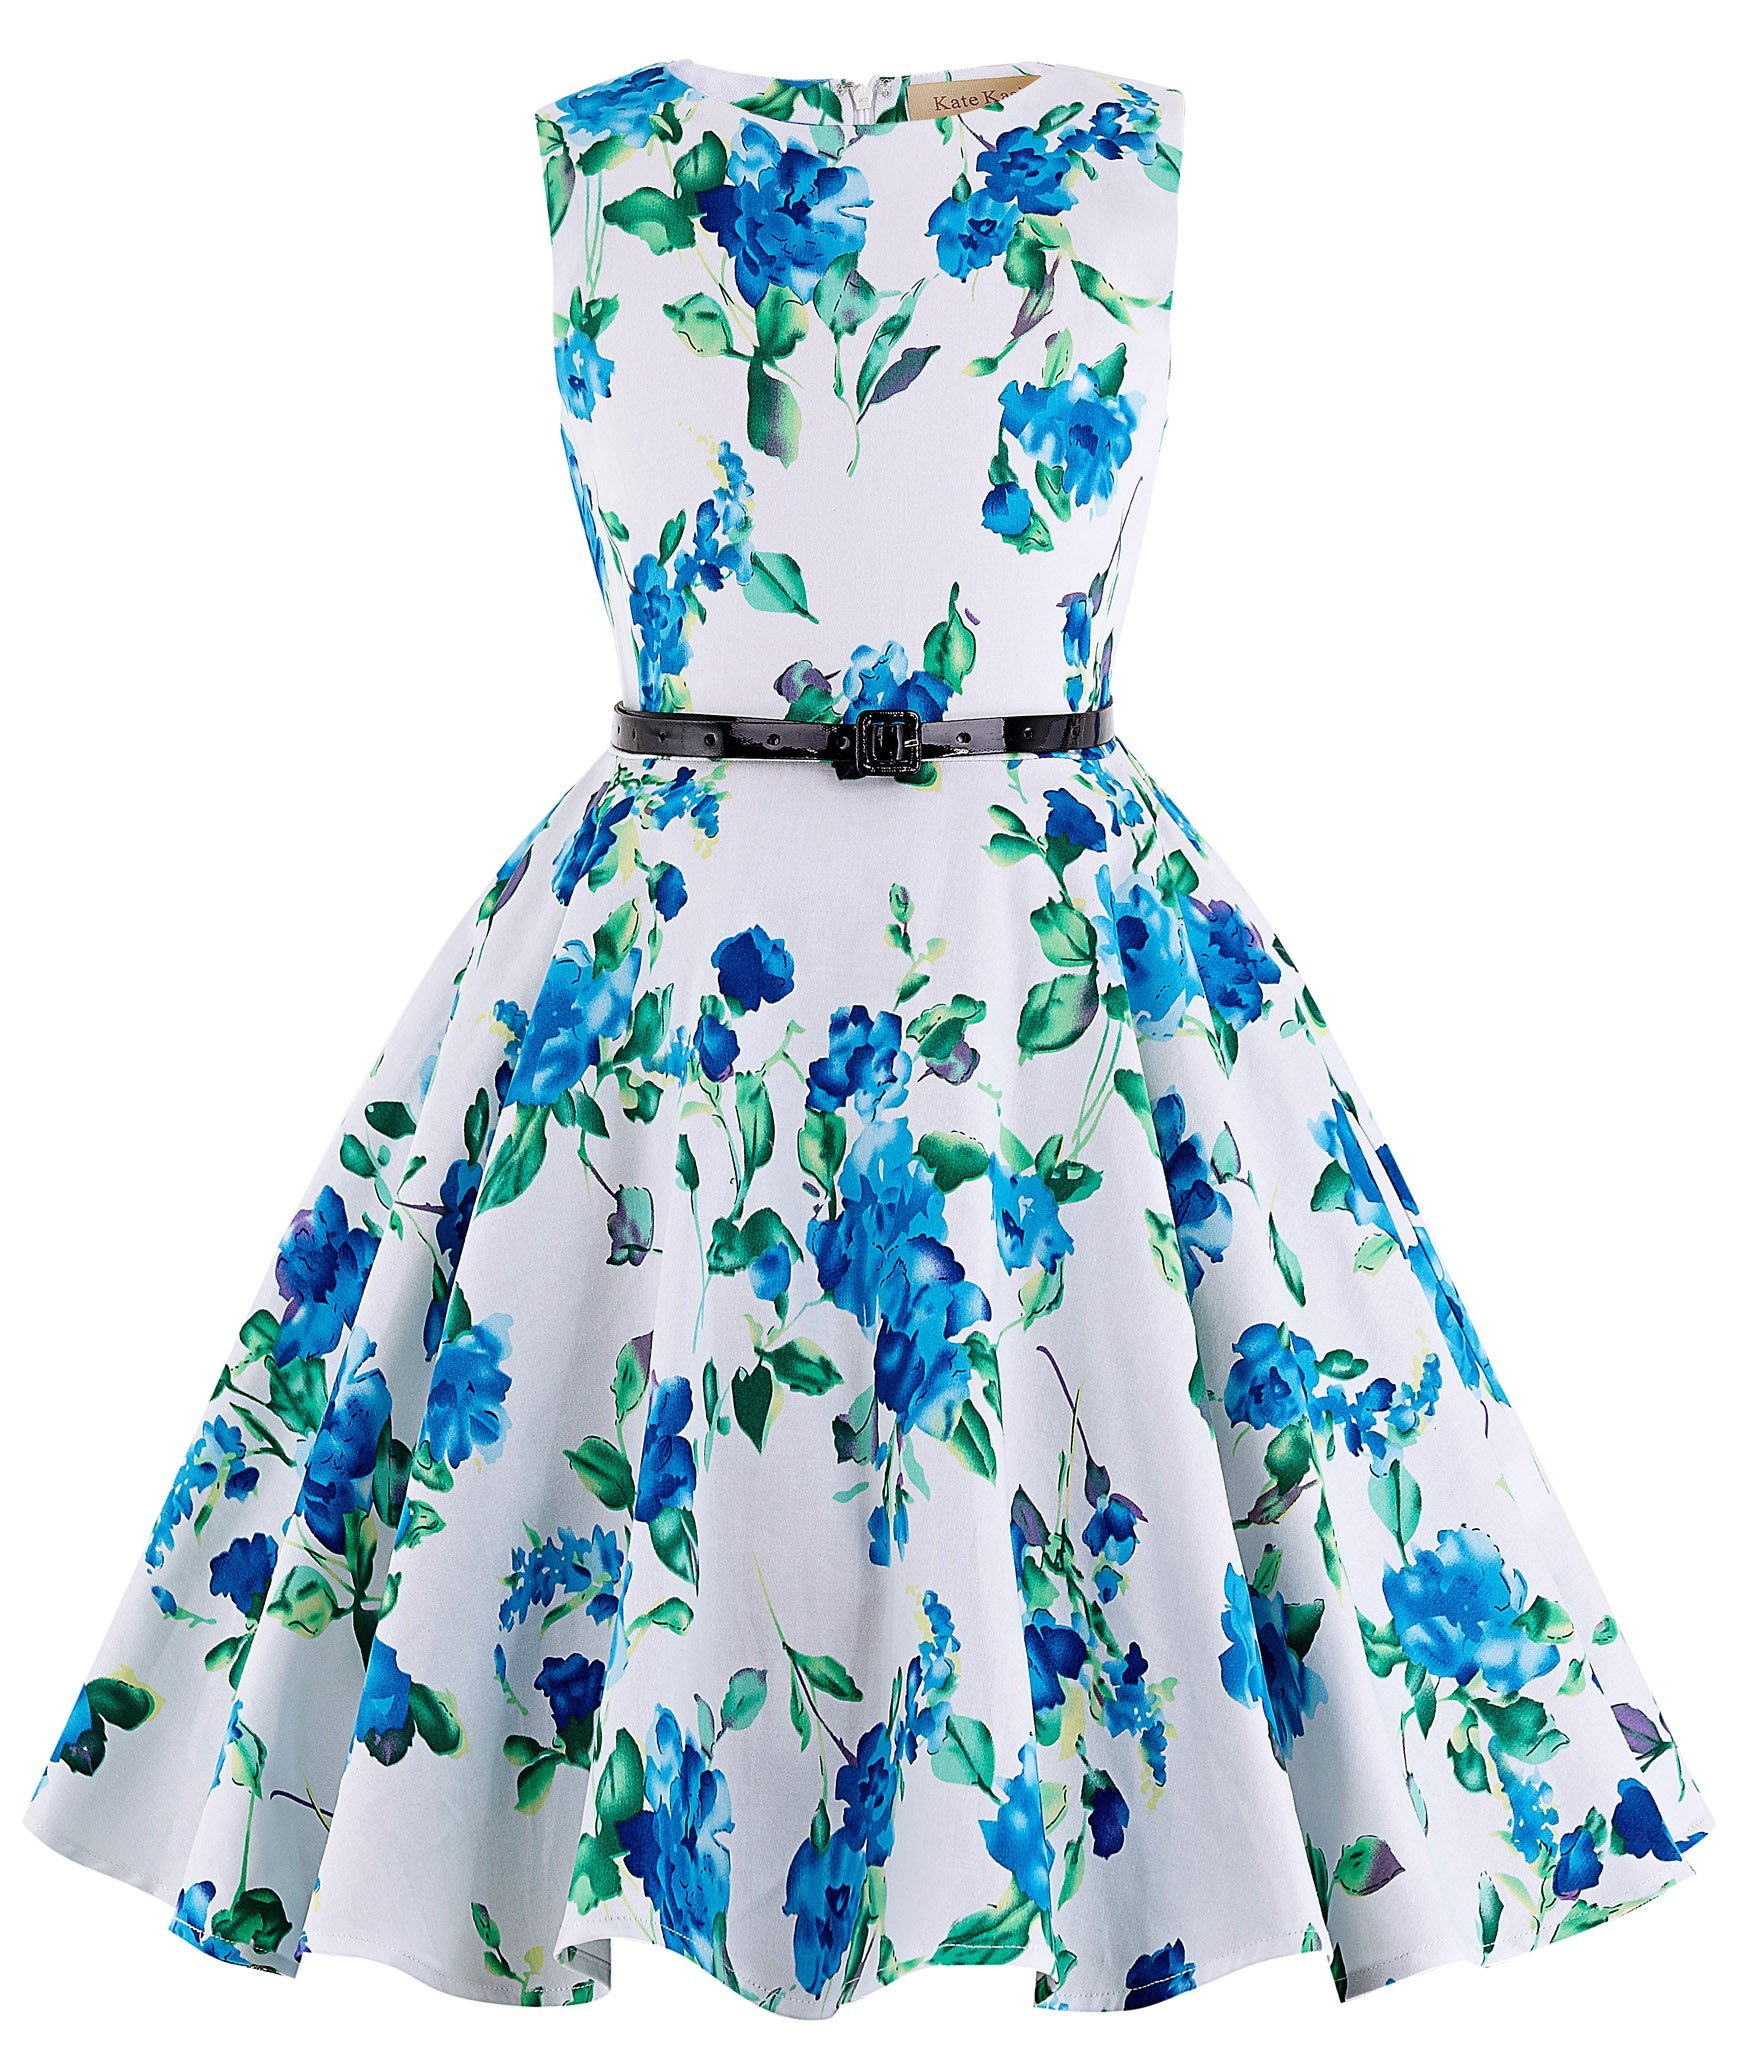 GRACE KARIN Blue Floral Vintage Wiggle Girl's Sleeveless Casual Party Dresses 11~12Yrs K250-3